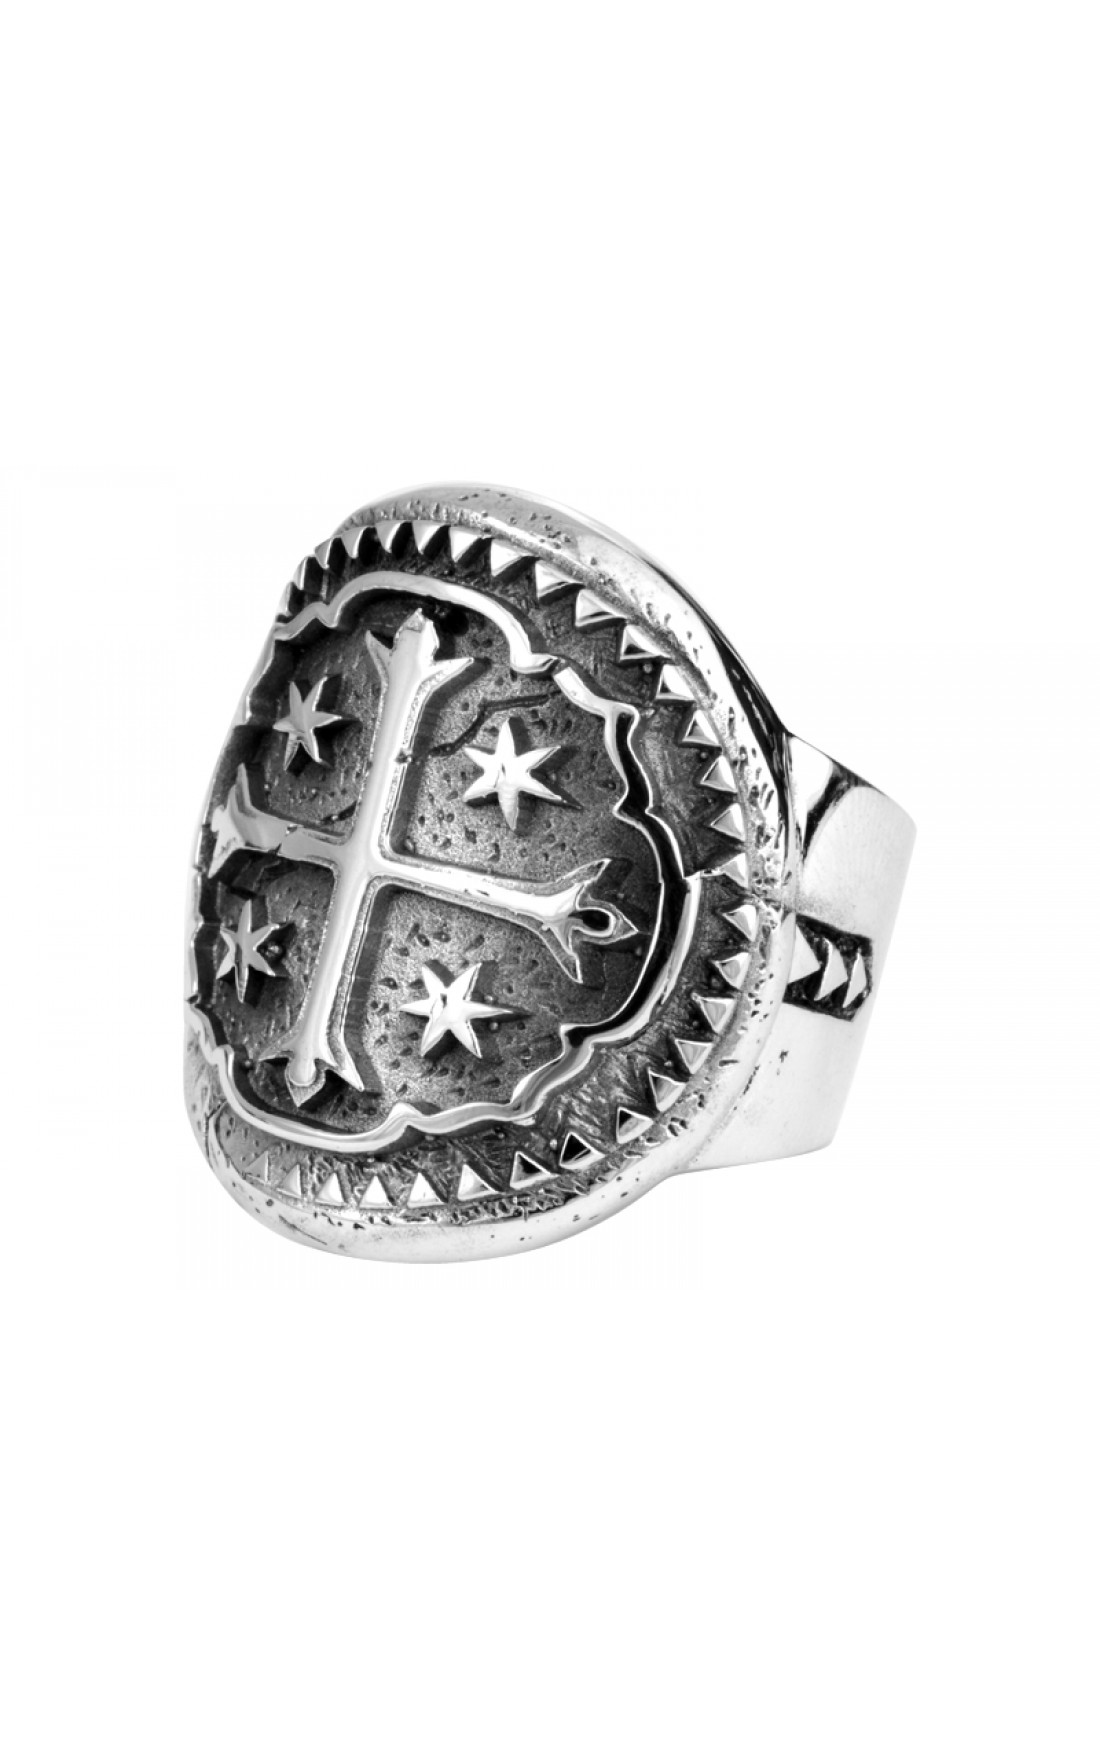 King Baby - Ship Wreck Cross Coin Ring (K20-5623)